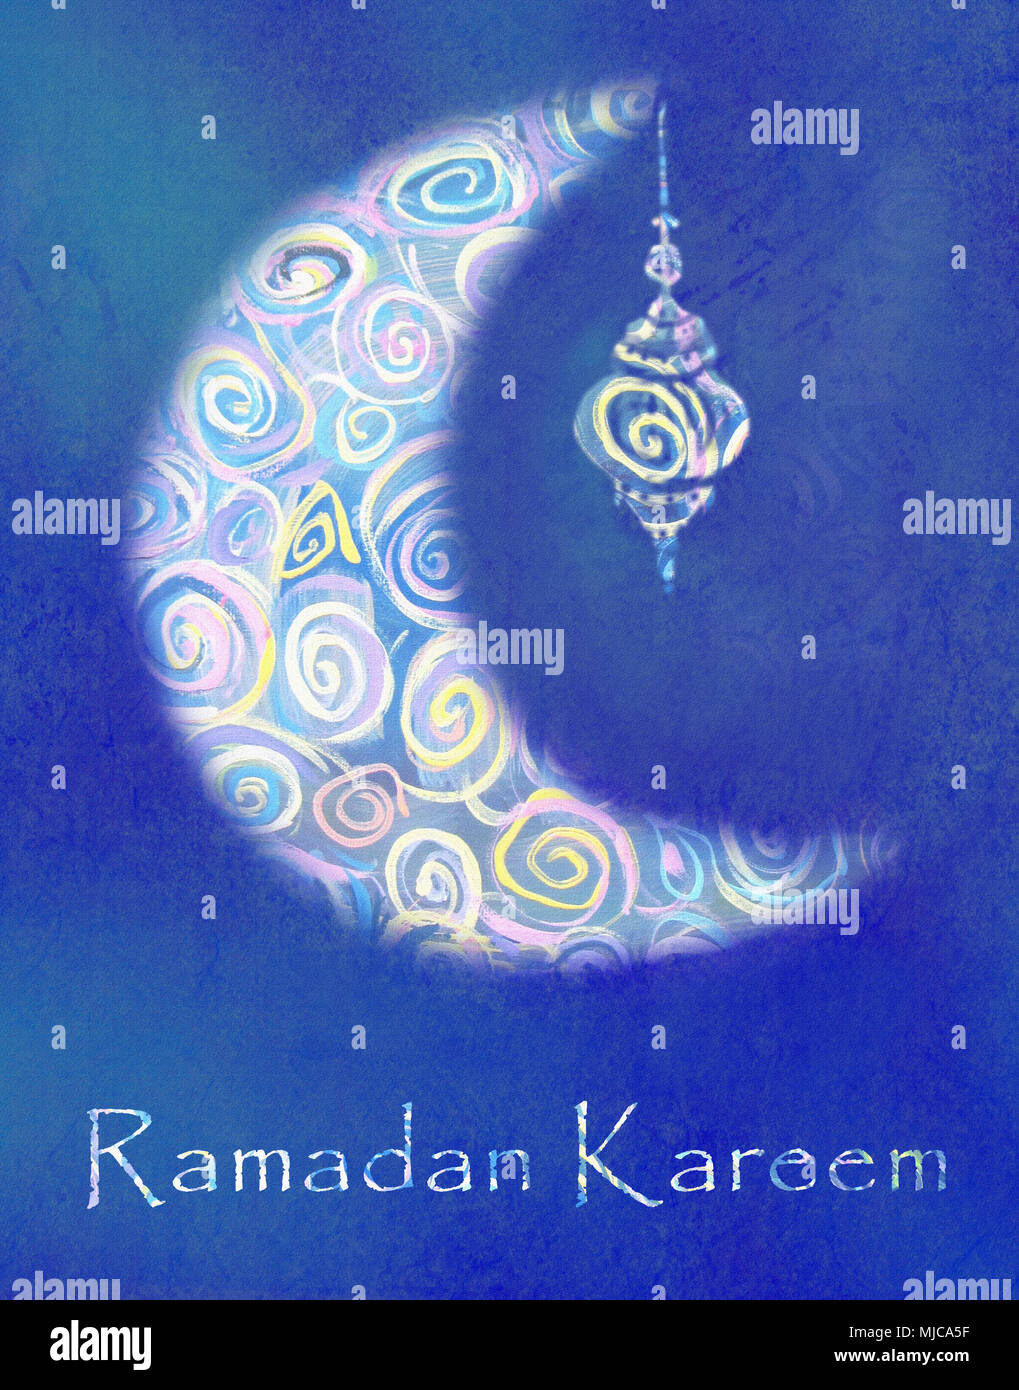 Greeting card of holy muslim month ramadan ornate crescent moon greeting card of holy muslim month ramadan ornate crescent moon with arabic lamp or lantern and stylish text on blue background m4hsunfo